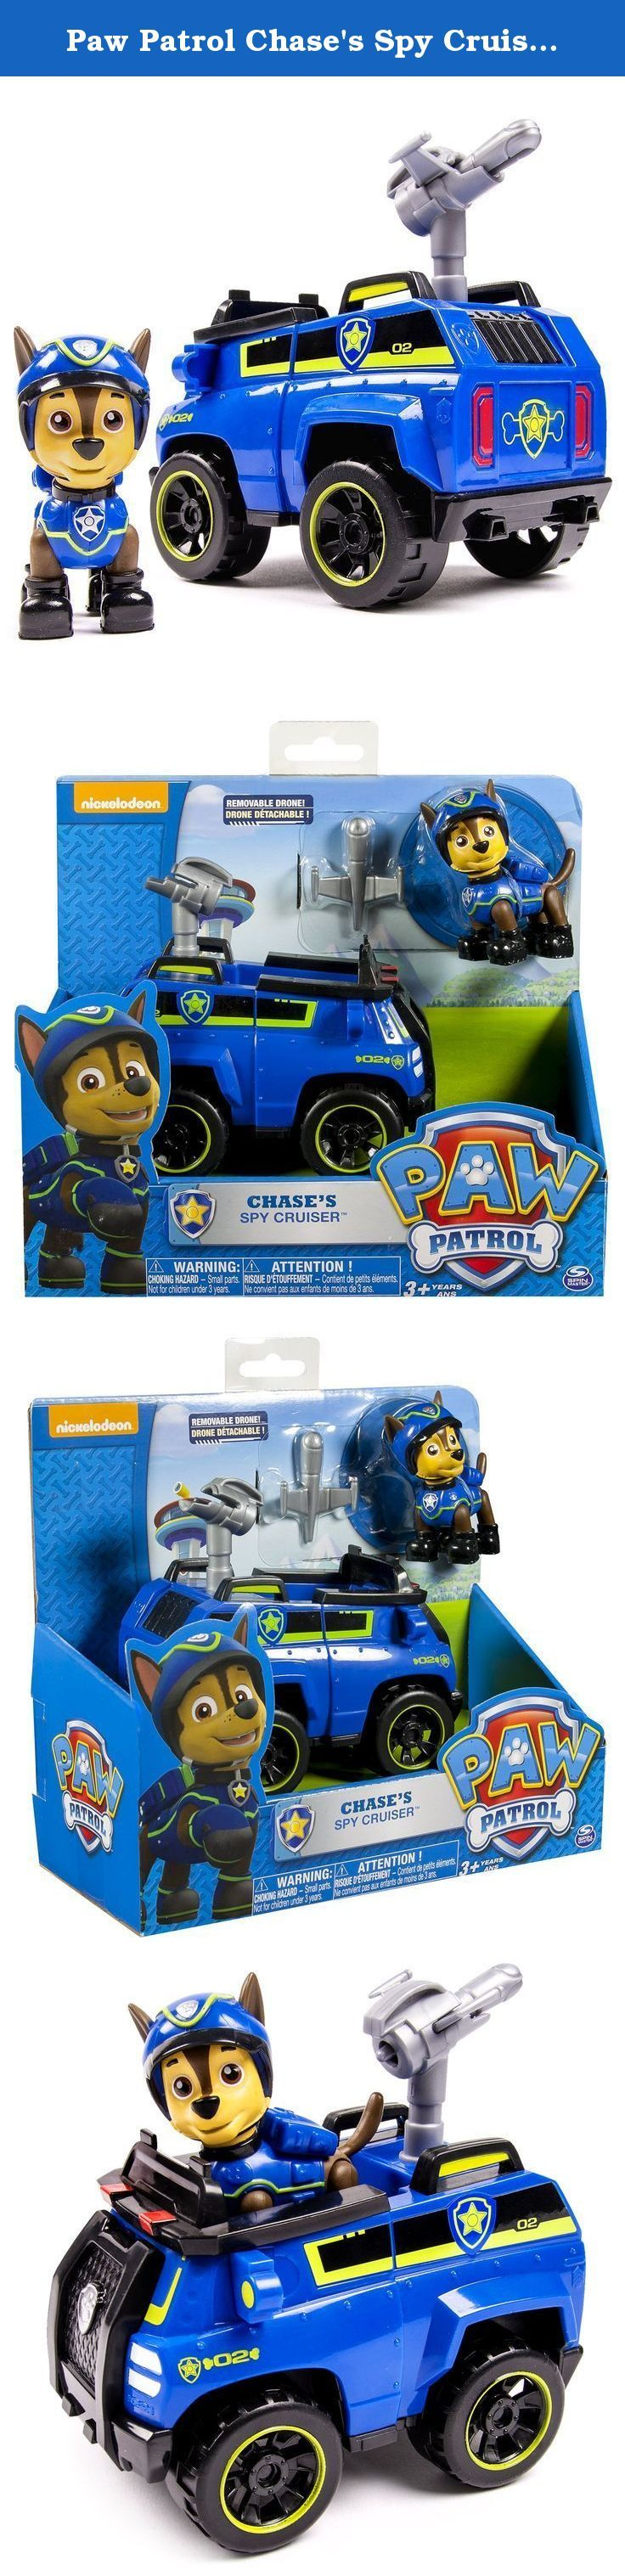 Paw Patrol Chase's Spy Cruiser, Vehicle and Figure (works with Paw Patroller). No job is too big and no pup is too small! Now you can reenact new rescue scenes with Spy Chase and his new Spy Chase Cruiser! All of your favorite Paw Patrol characters are ready to save the day. Race to the ruff-ruff rescue with Spy Chase! Together, your child's imagination will be lit up with pup inspired rescue missions full of friendship, teamwork and bravery. With Spy Chase and Spy Cruiser you can save…